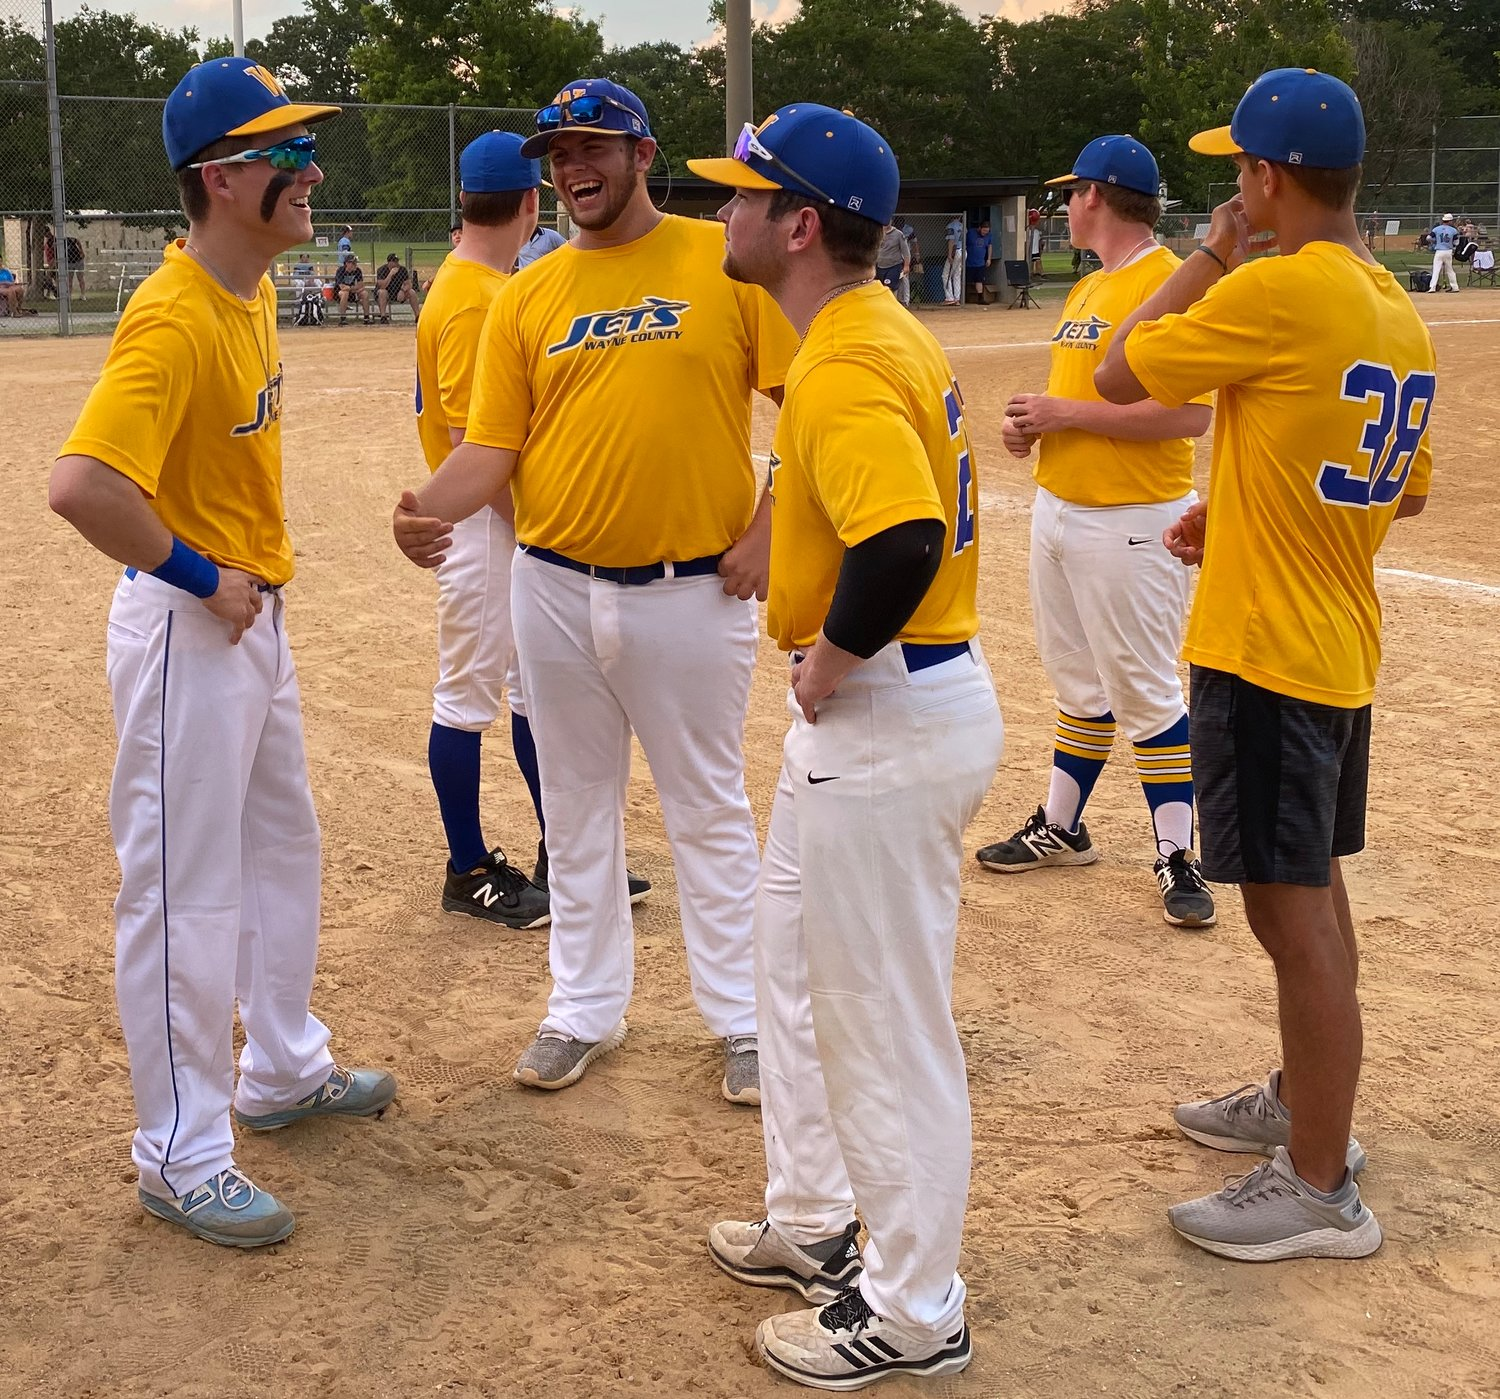 Wayne County Jets players talk before their game against the Garner Nationals on Monday evening.